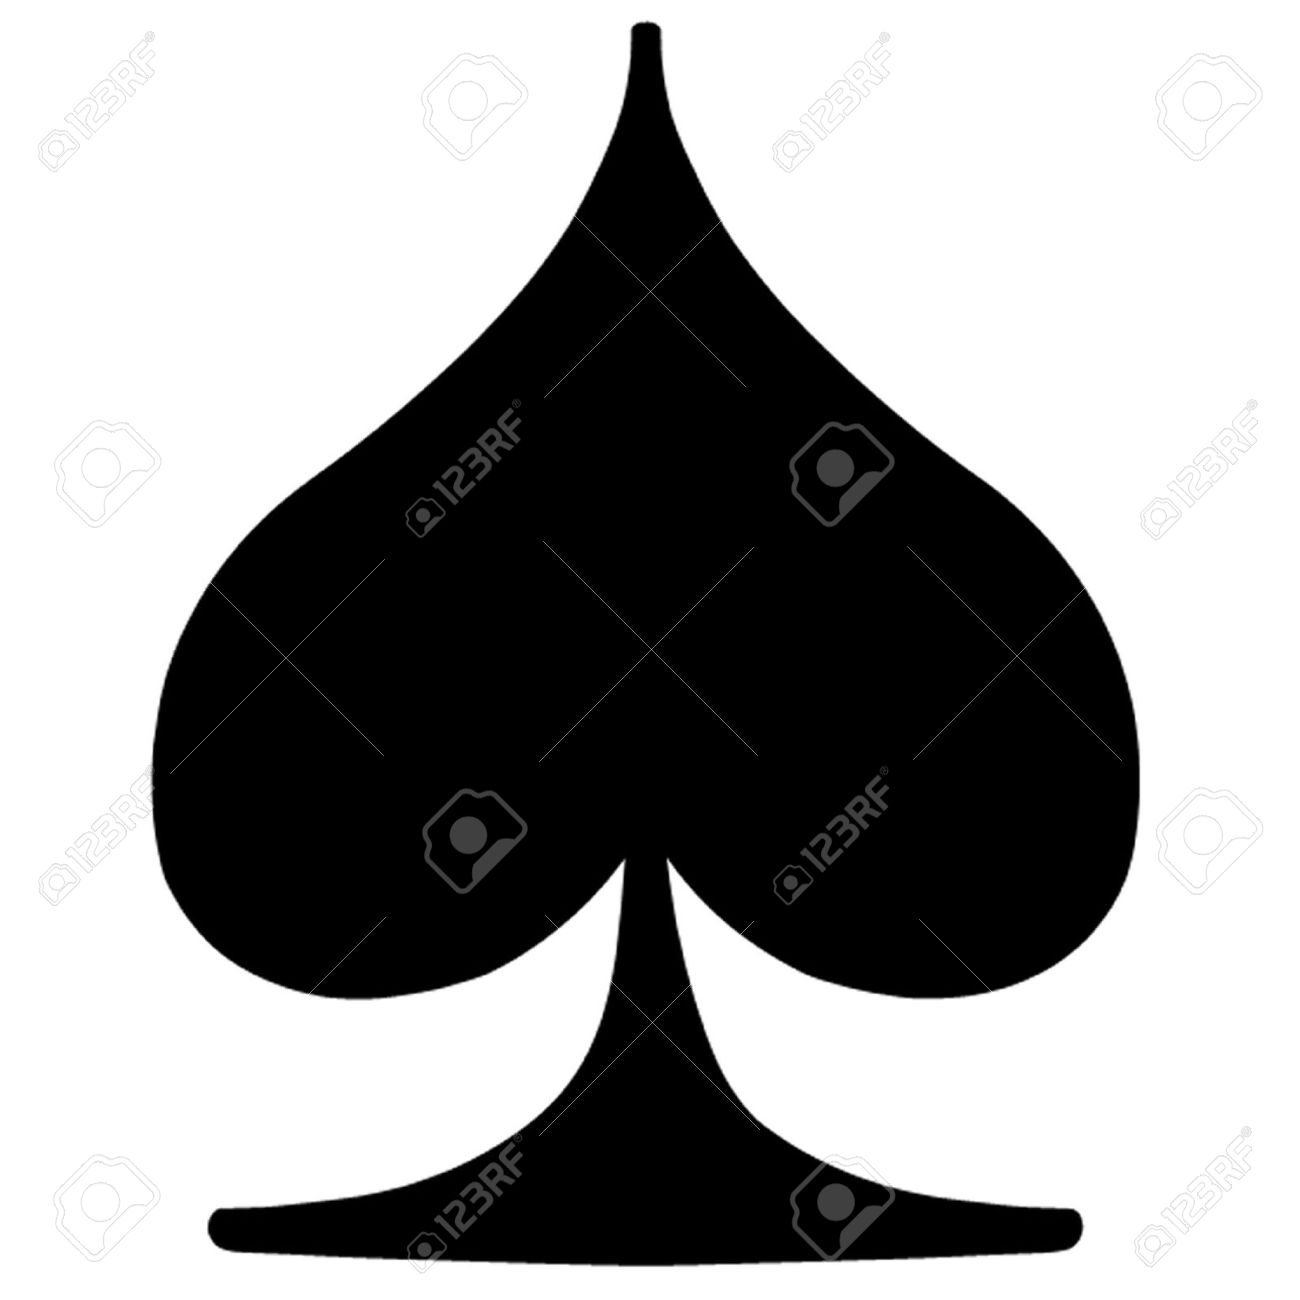 Poker Cards Hearts Poker Card Suit Spade